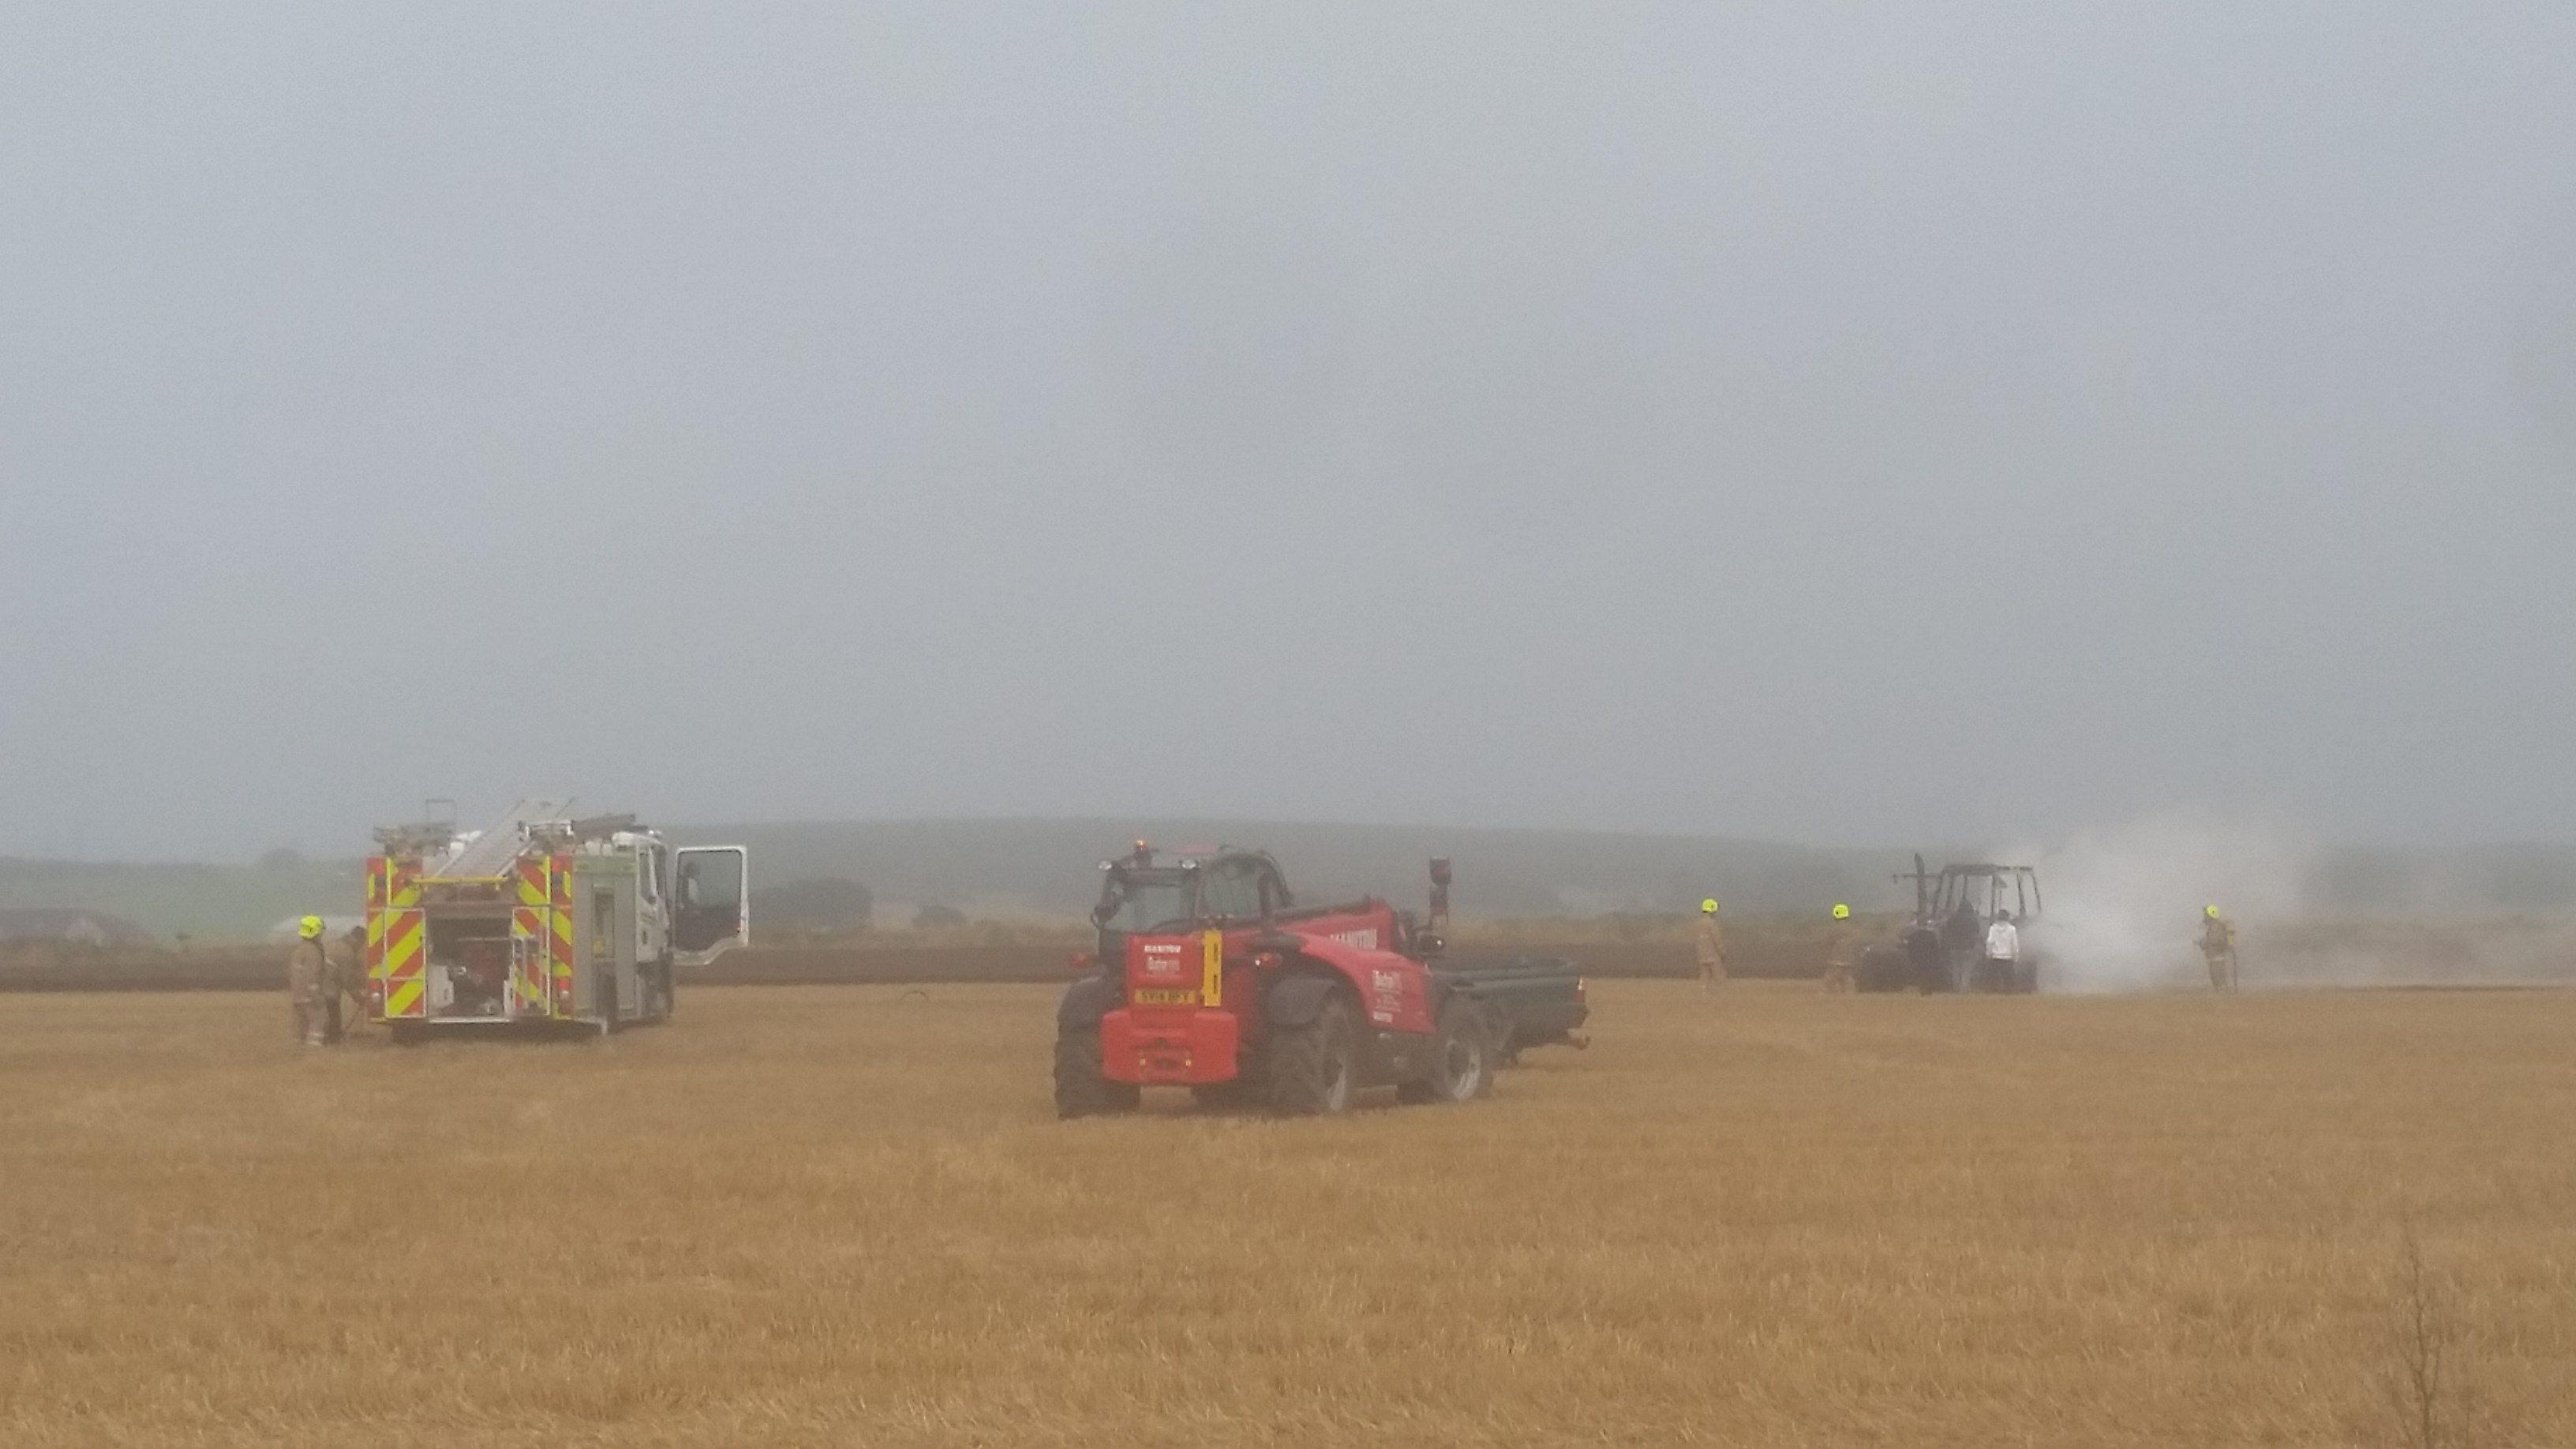 Tractor fire at Rora